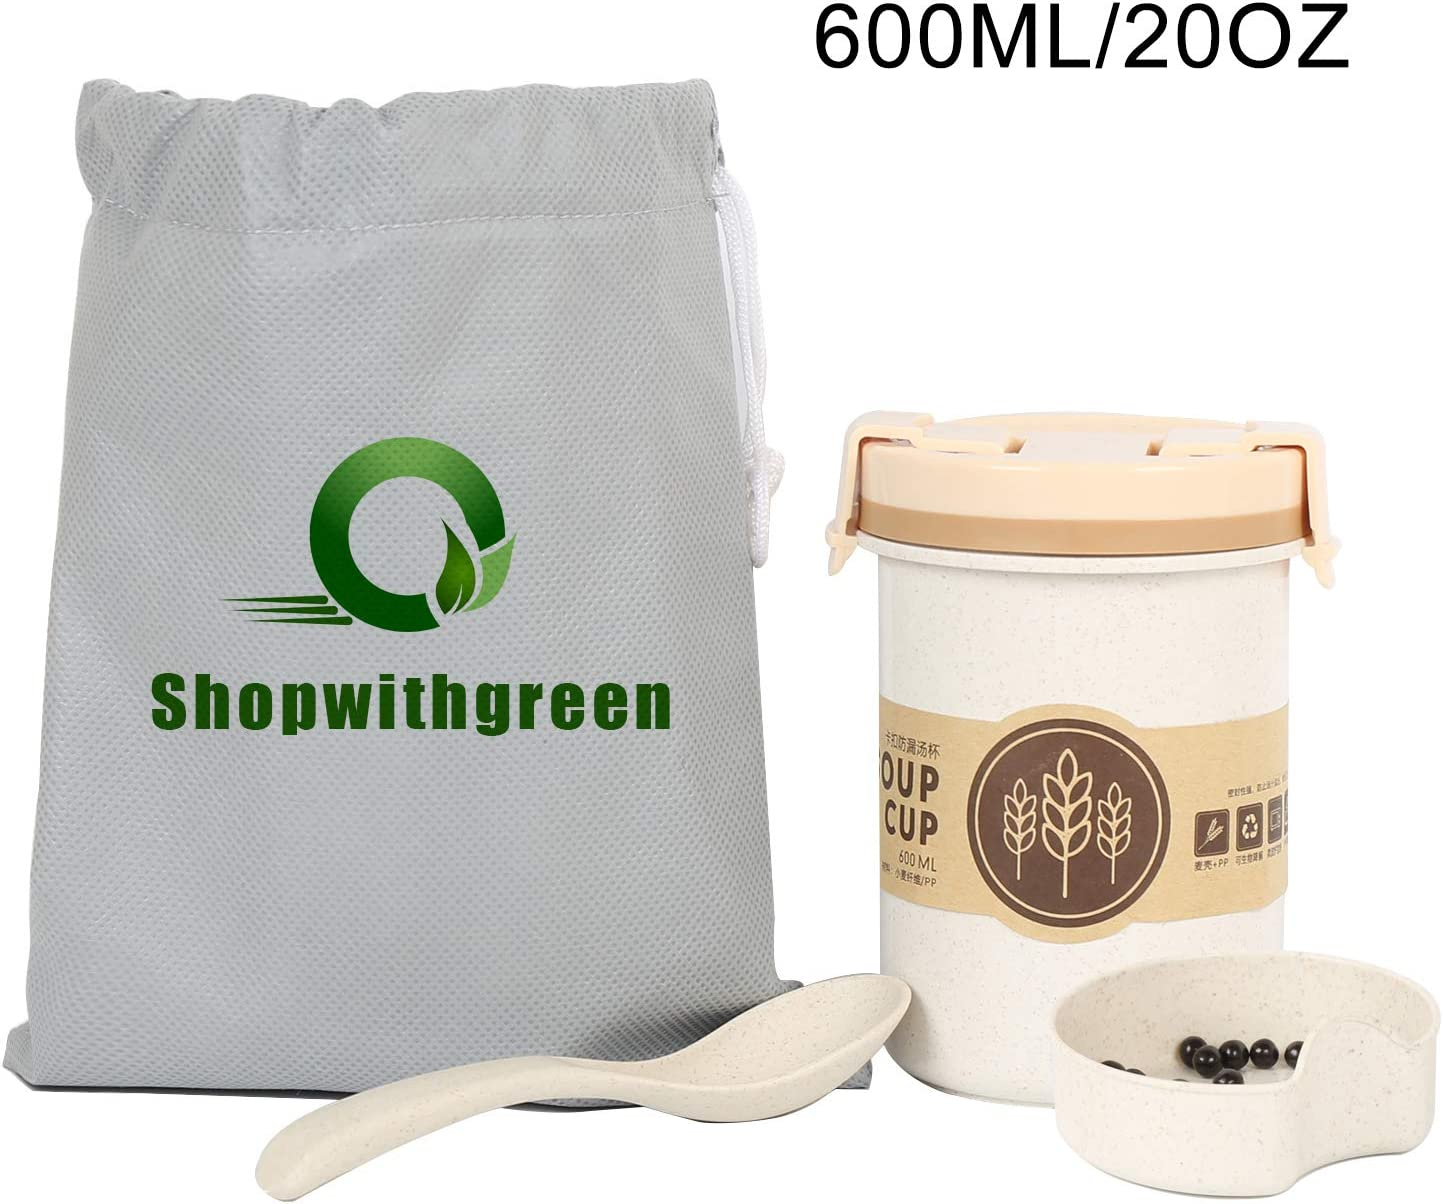 Shopwithgreen Leakproof To Go Soup Container with Spoon and Carry Bag– 20 OZ Portable Travel Cup – Microwave and Dishwasher Safe, Silicone Seal, BPA free, Eco-Friendly Wheat Straw Material